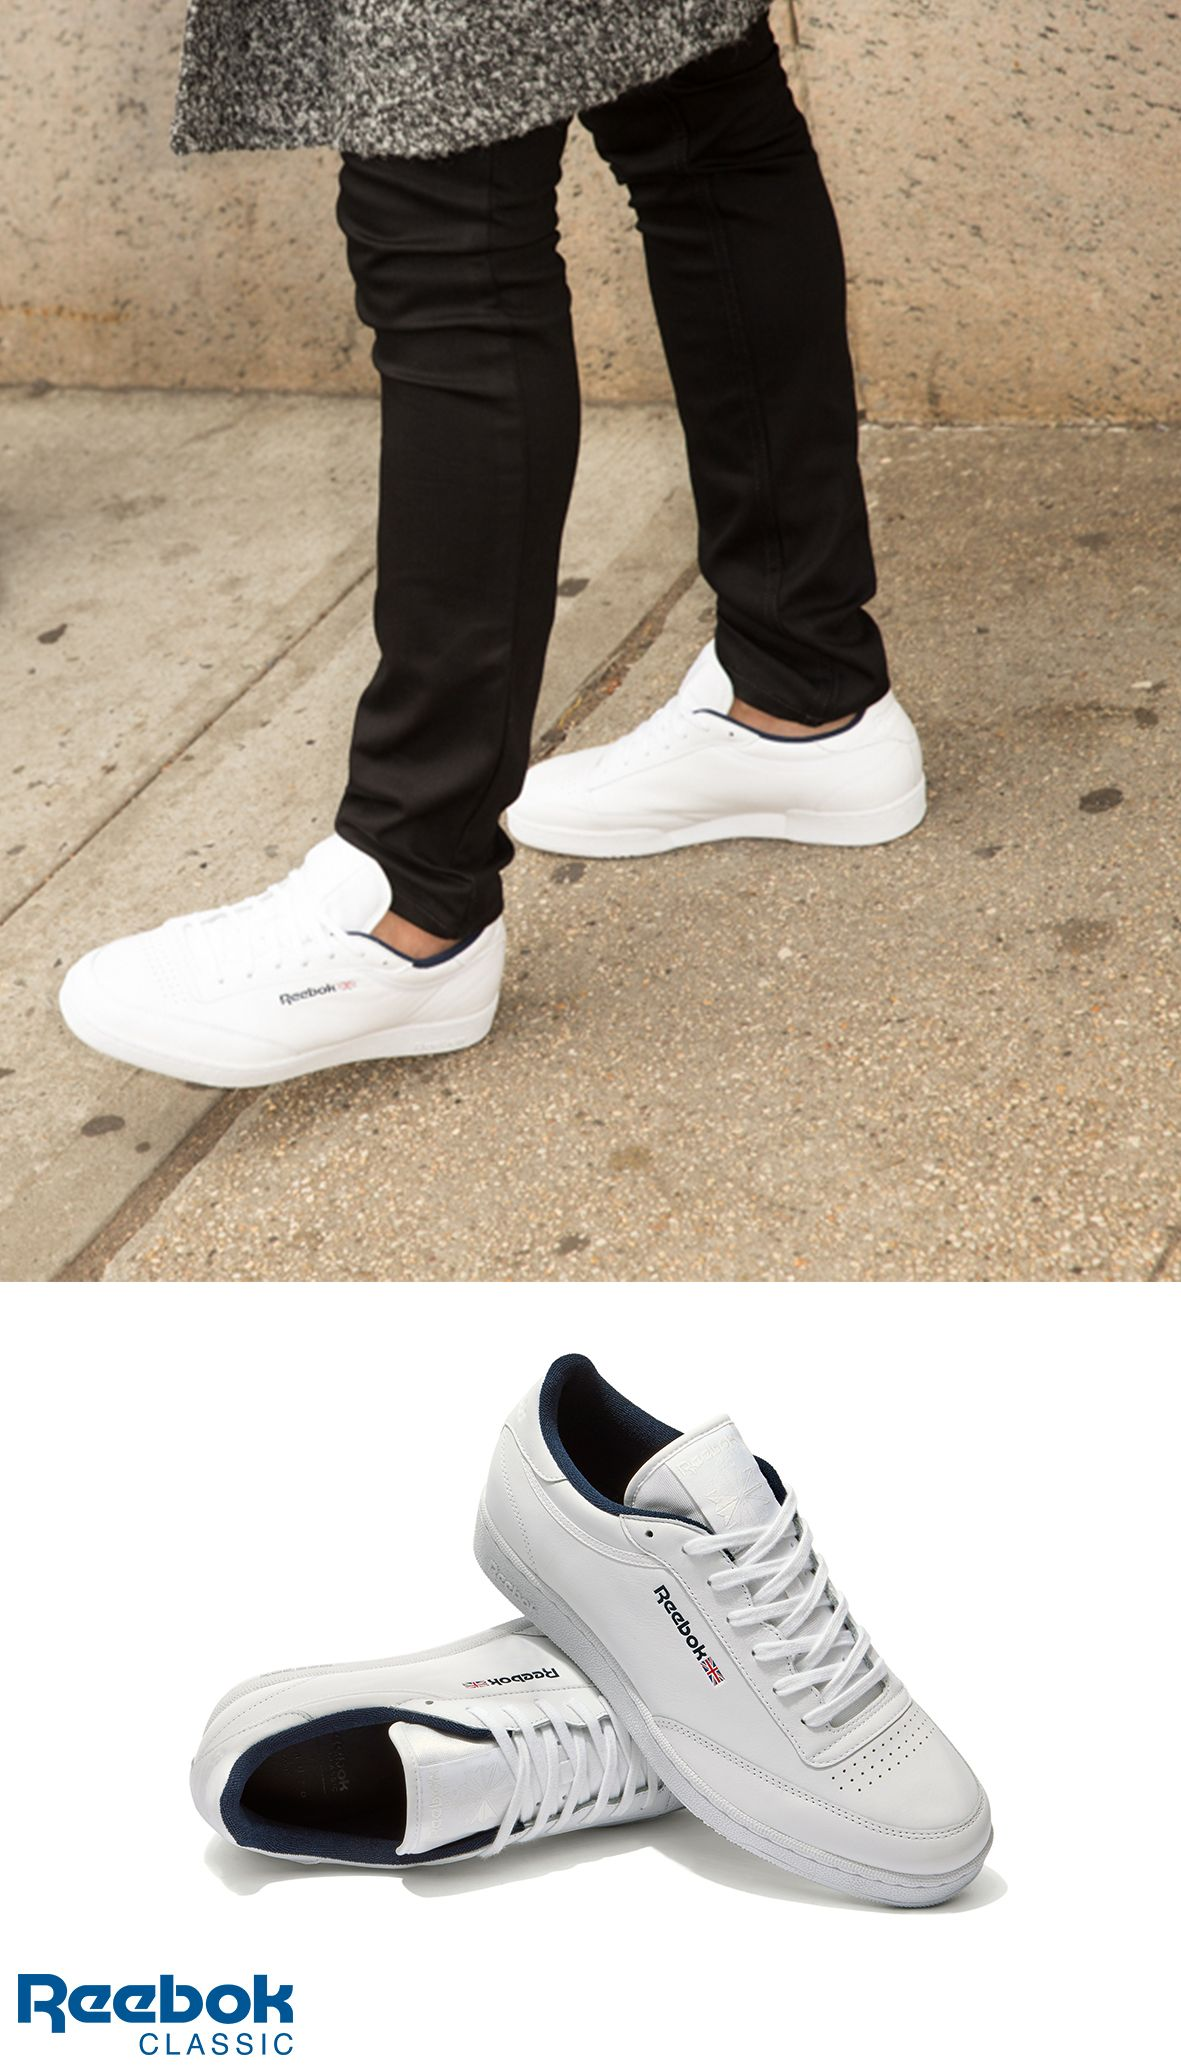 e90851b0eec5 Your new go-to sneaker. The Reebok X Sandro all white Club C men's ...